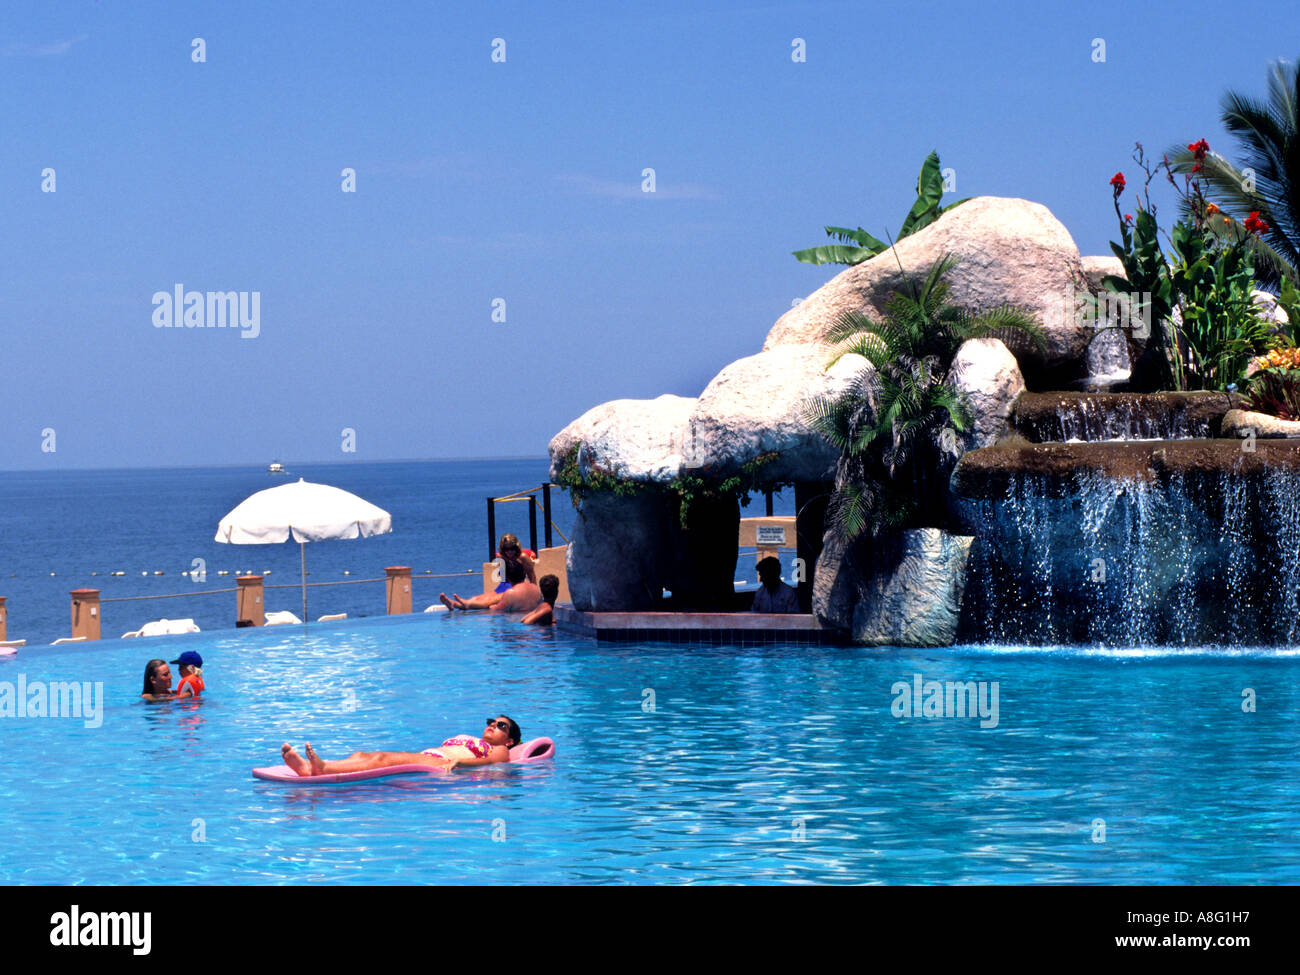 Puerto vallarta mexico mexican hotel swimming pool bath - Hotels in bath with swimming pool ...